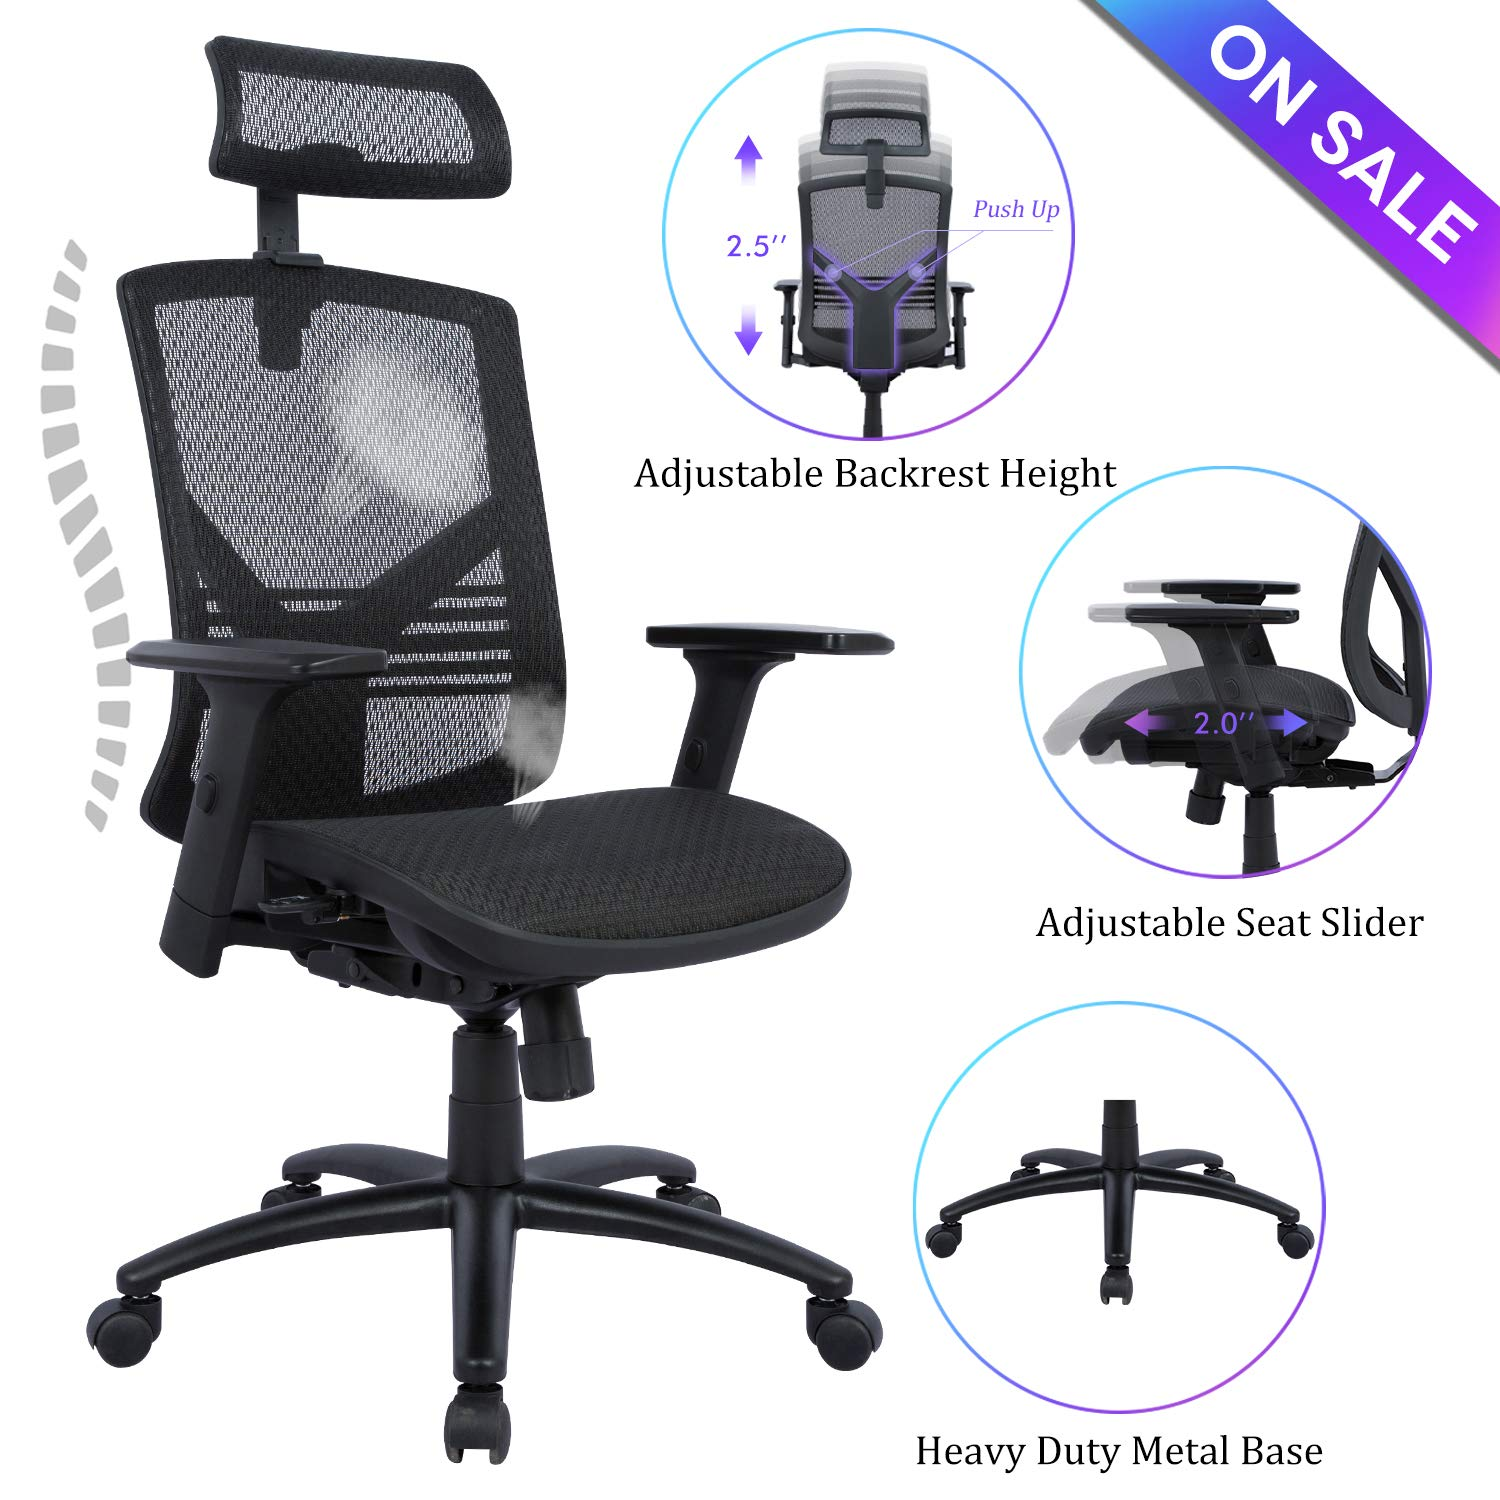 Statesville Ergonomic High Back Mesh Office Chair – Adjustable Backrest, Seat Slider, Arms and Headrest Desk Chair Computer Chair with Metal Base, Black